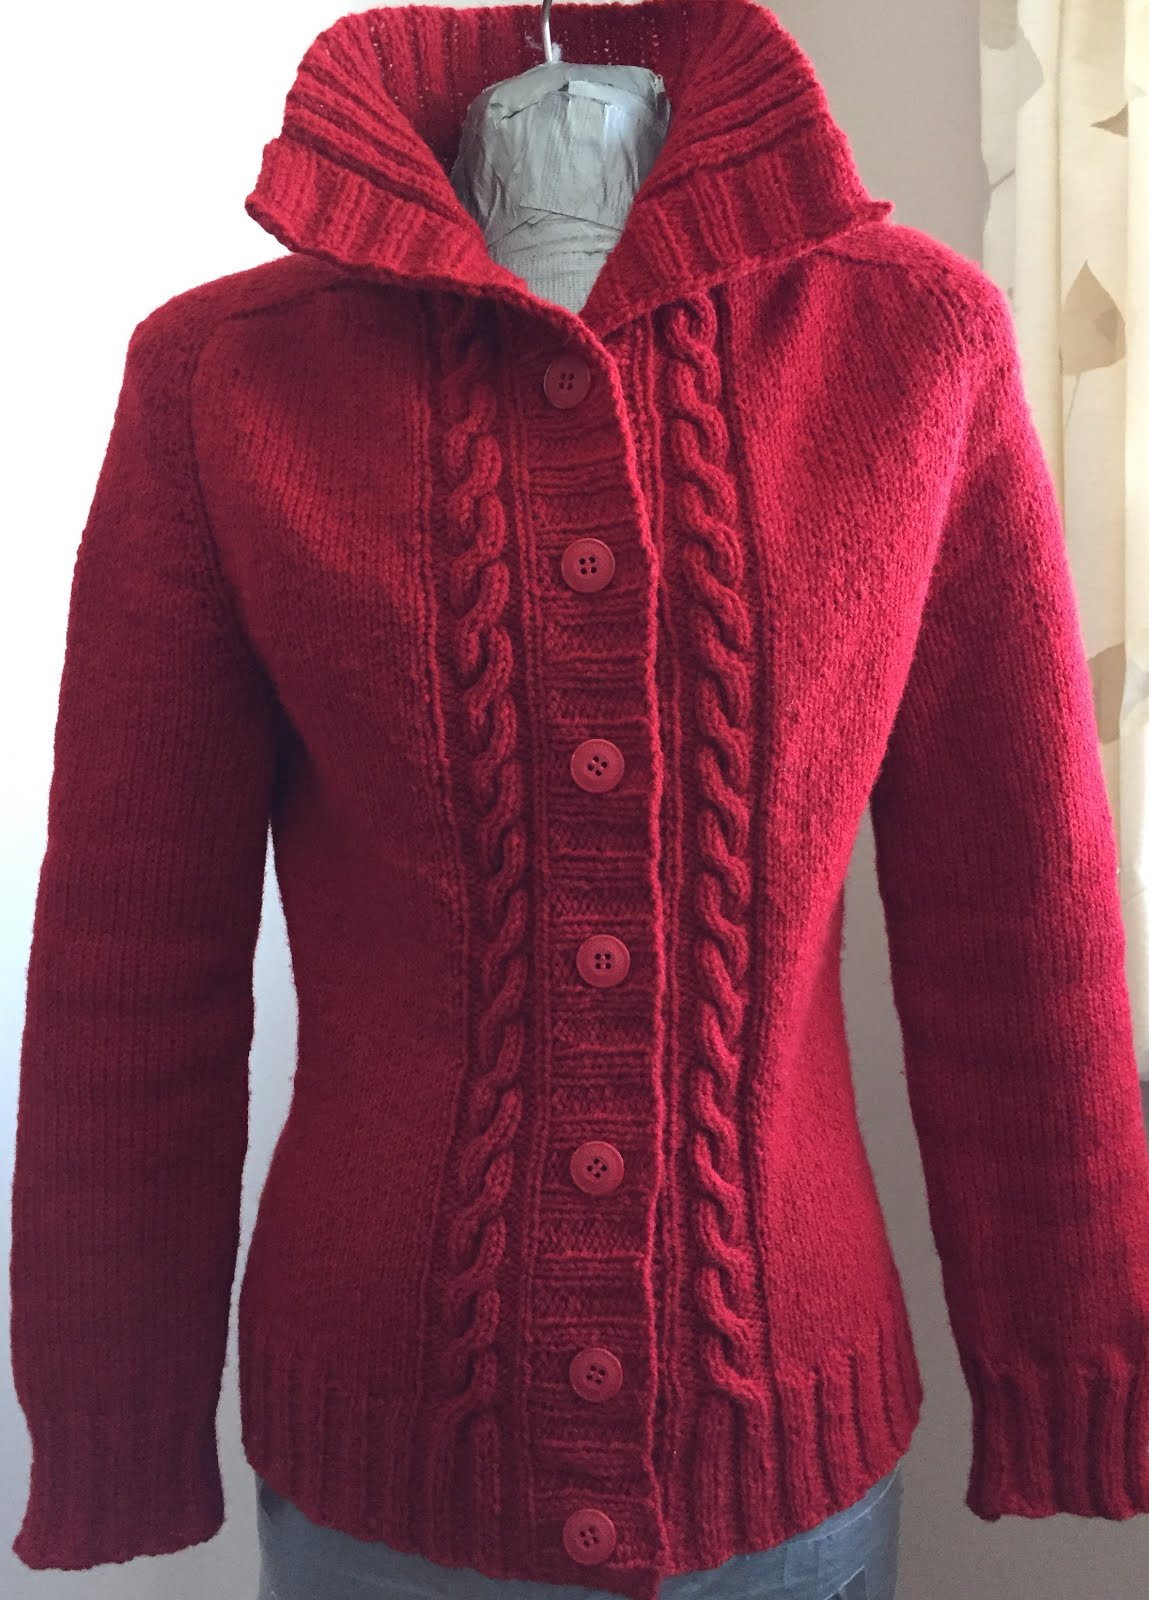 Complicated Knitting Patterns : The Sewing Lawyer: Complicated hand-knit cardigan ... phew!